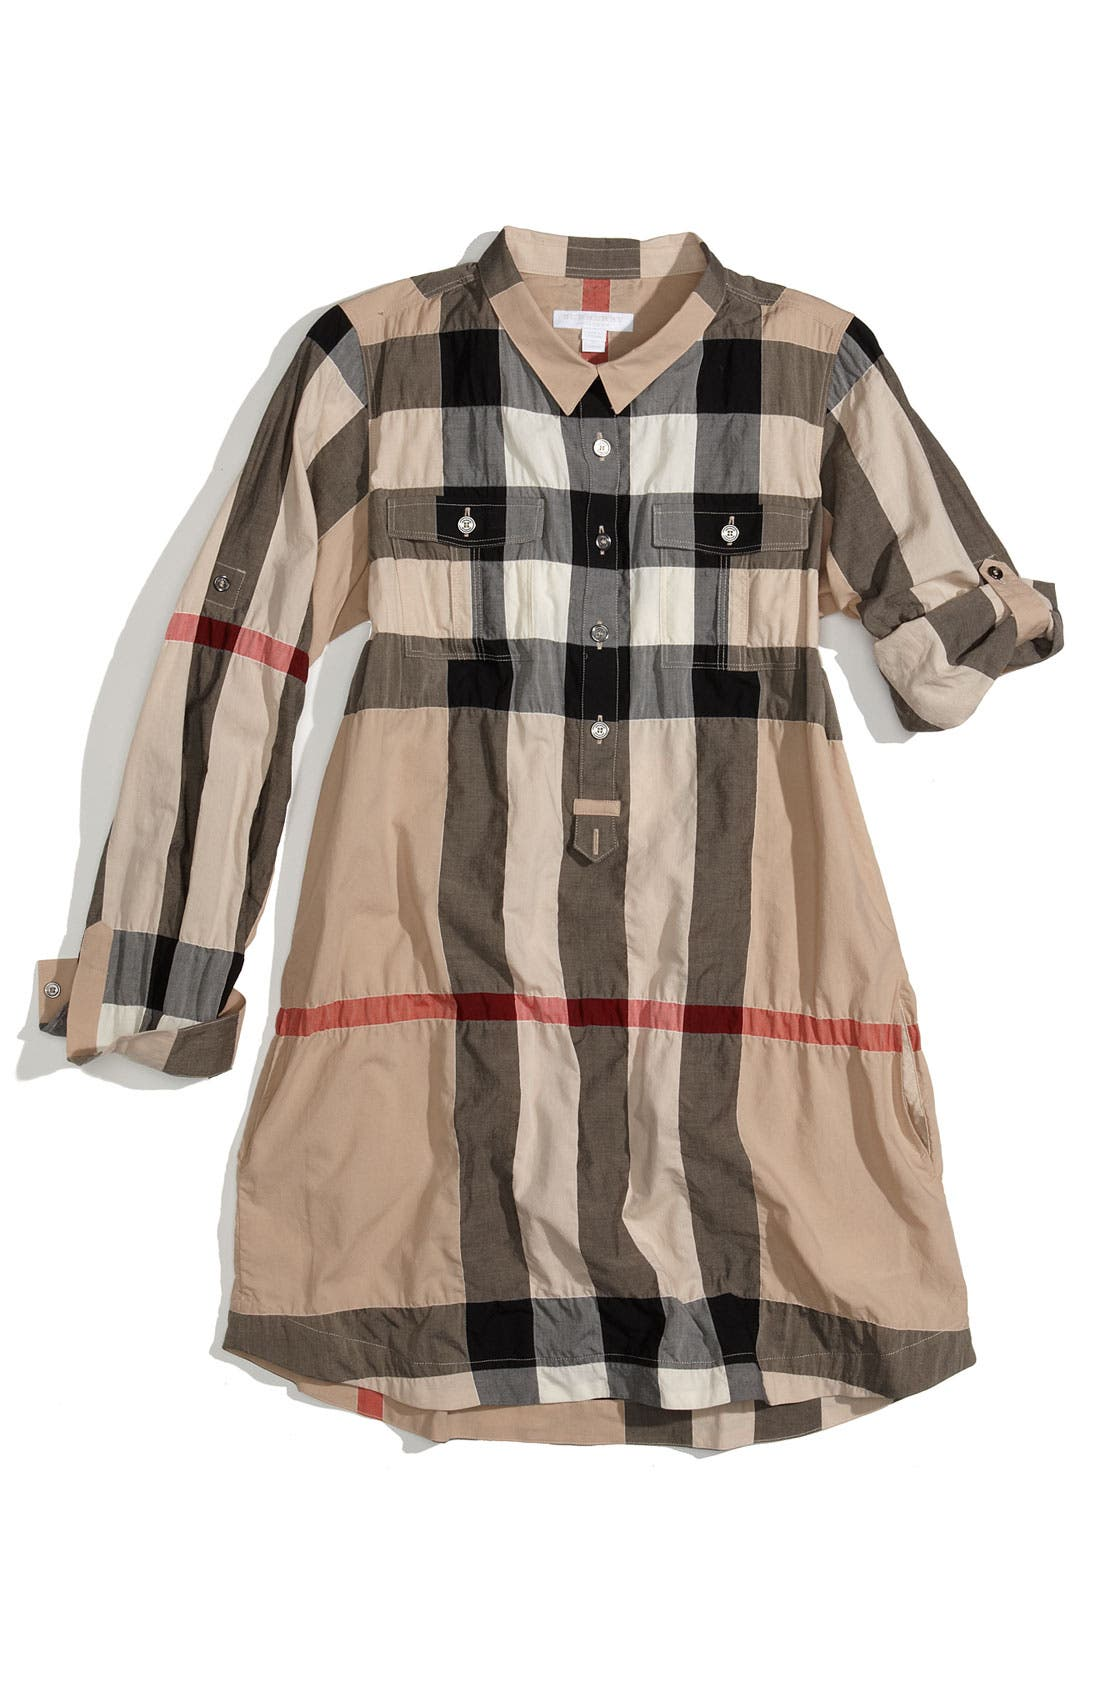 Alternate Image 1 Selected - Burberry Check Print Shirtdress (Big Girls)